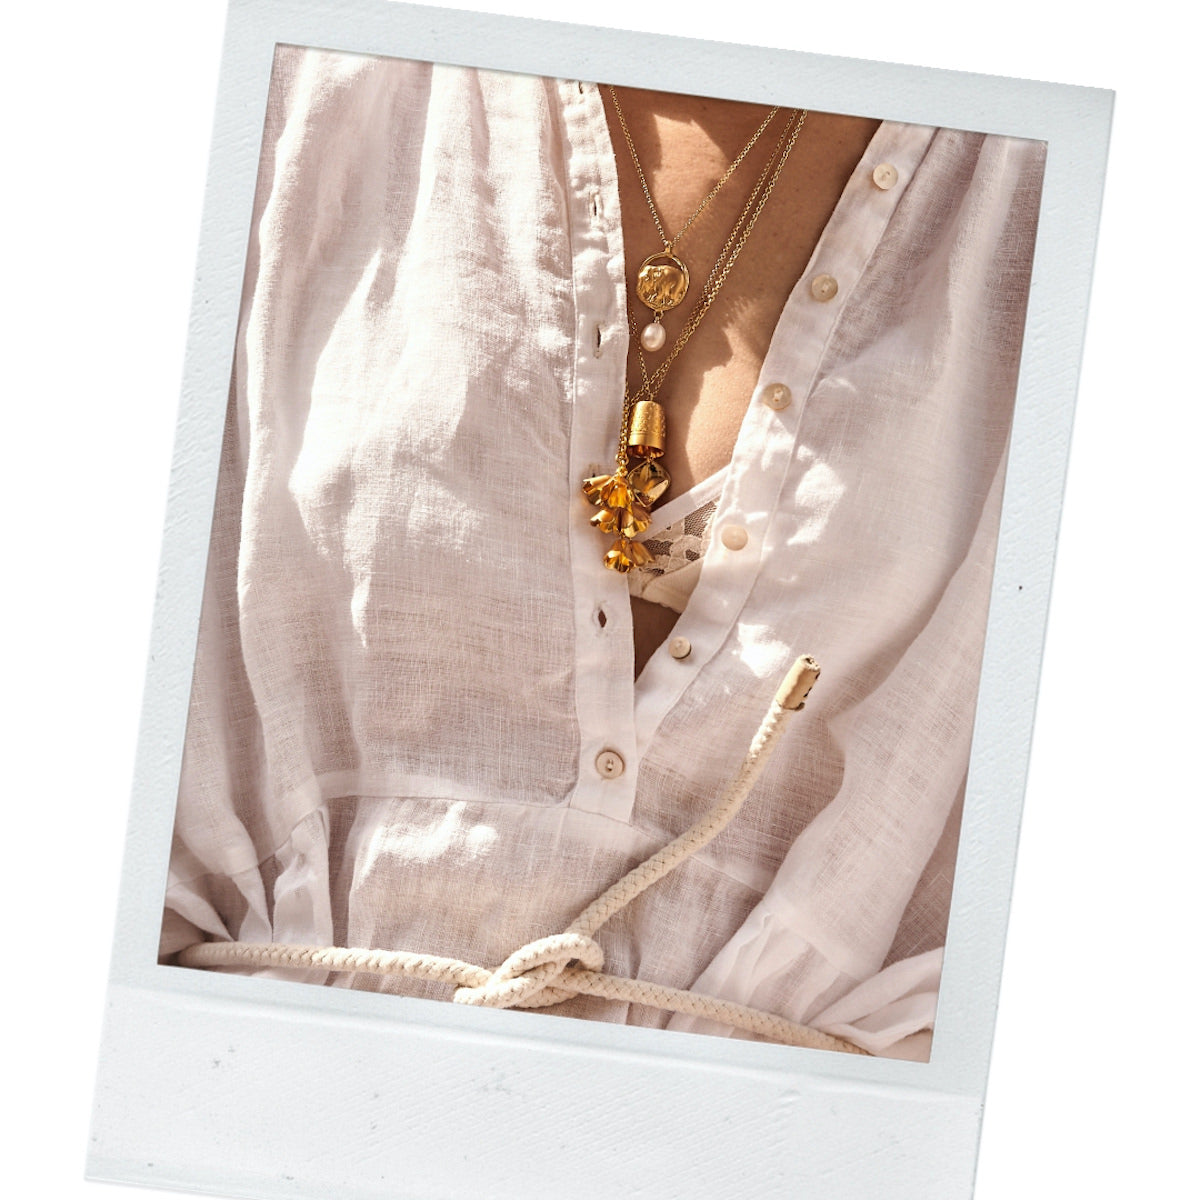 Women wearing Brave Edith gold necklaces on white shirt